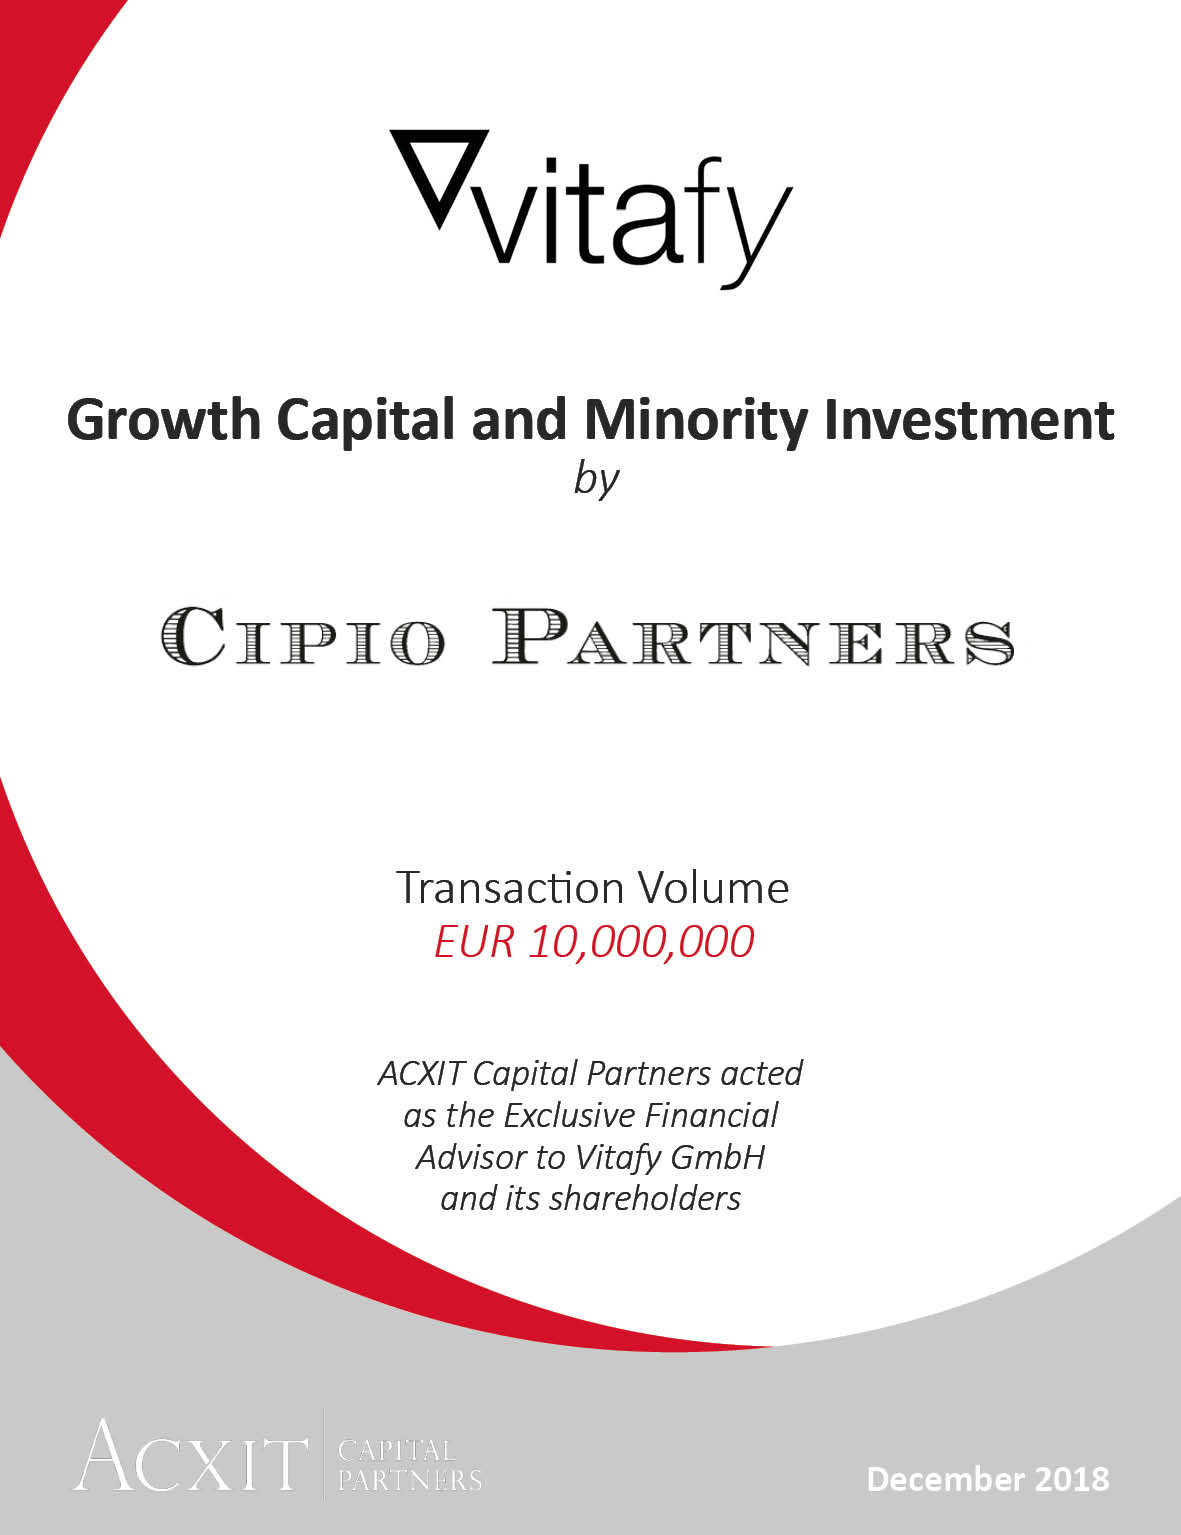 VITAFY secures investment from Cipio Partners